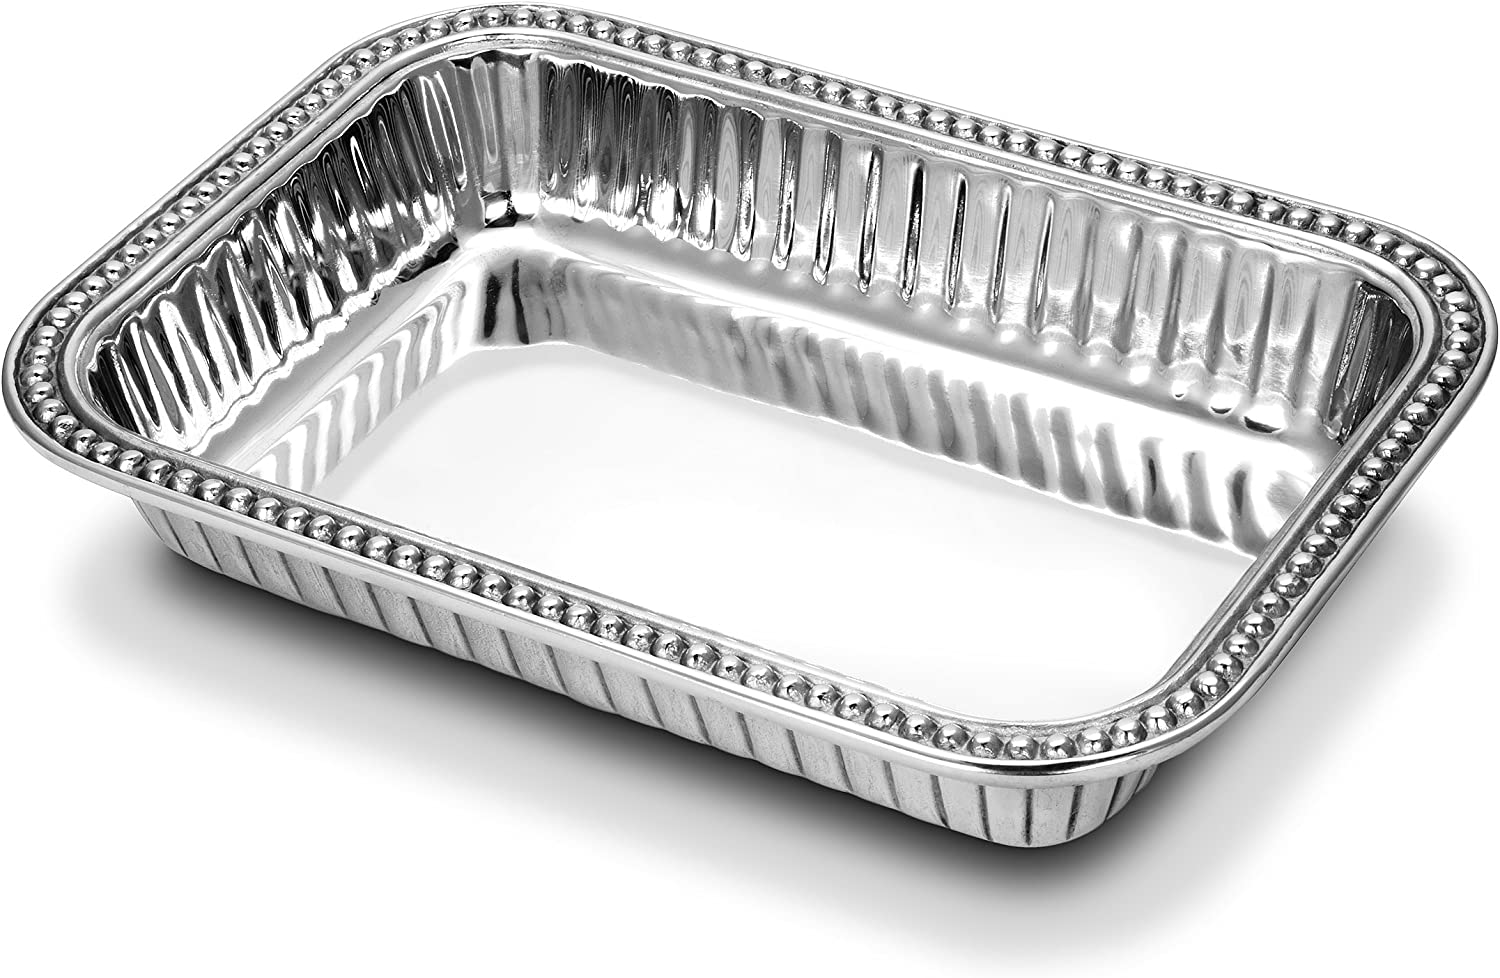 Wilton Armetale Flutes and Pearls Rectangular Baking Dish, 9-Inch-by-13-Inch